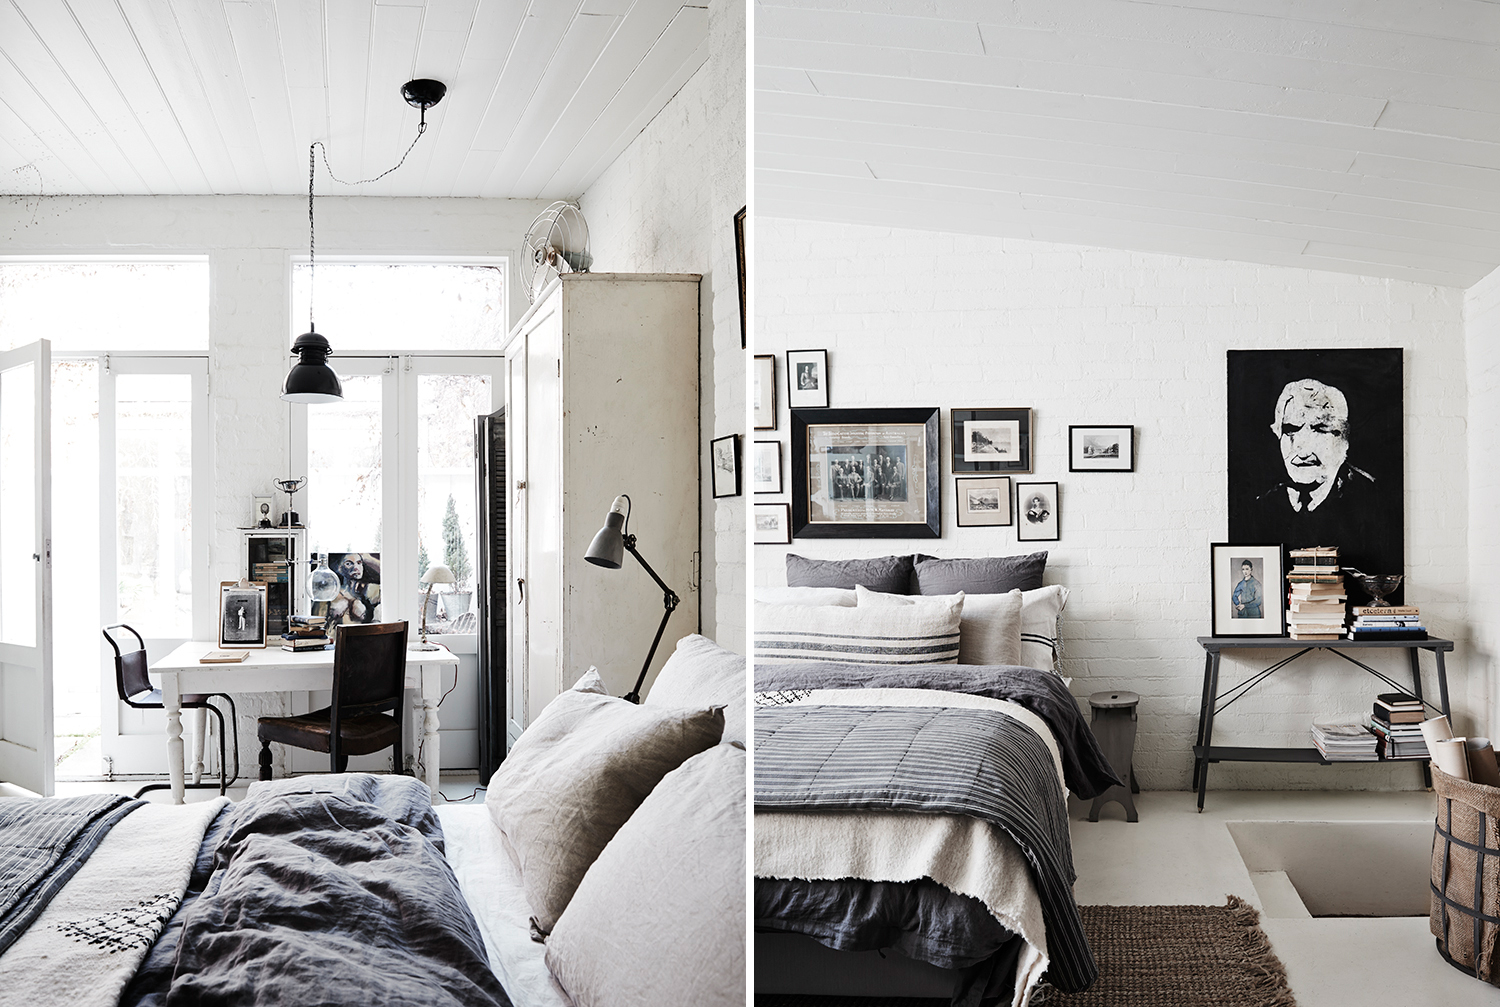 The white room shabby chic interiors - Camera industrial chic ...